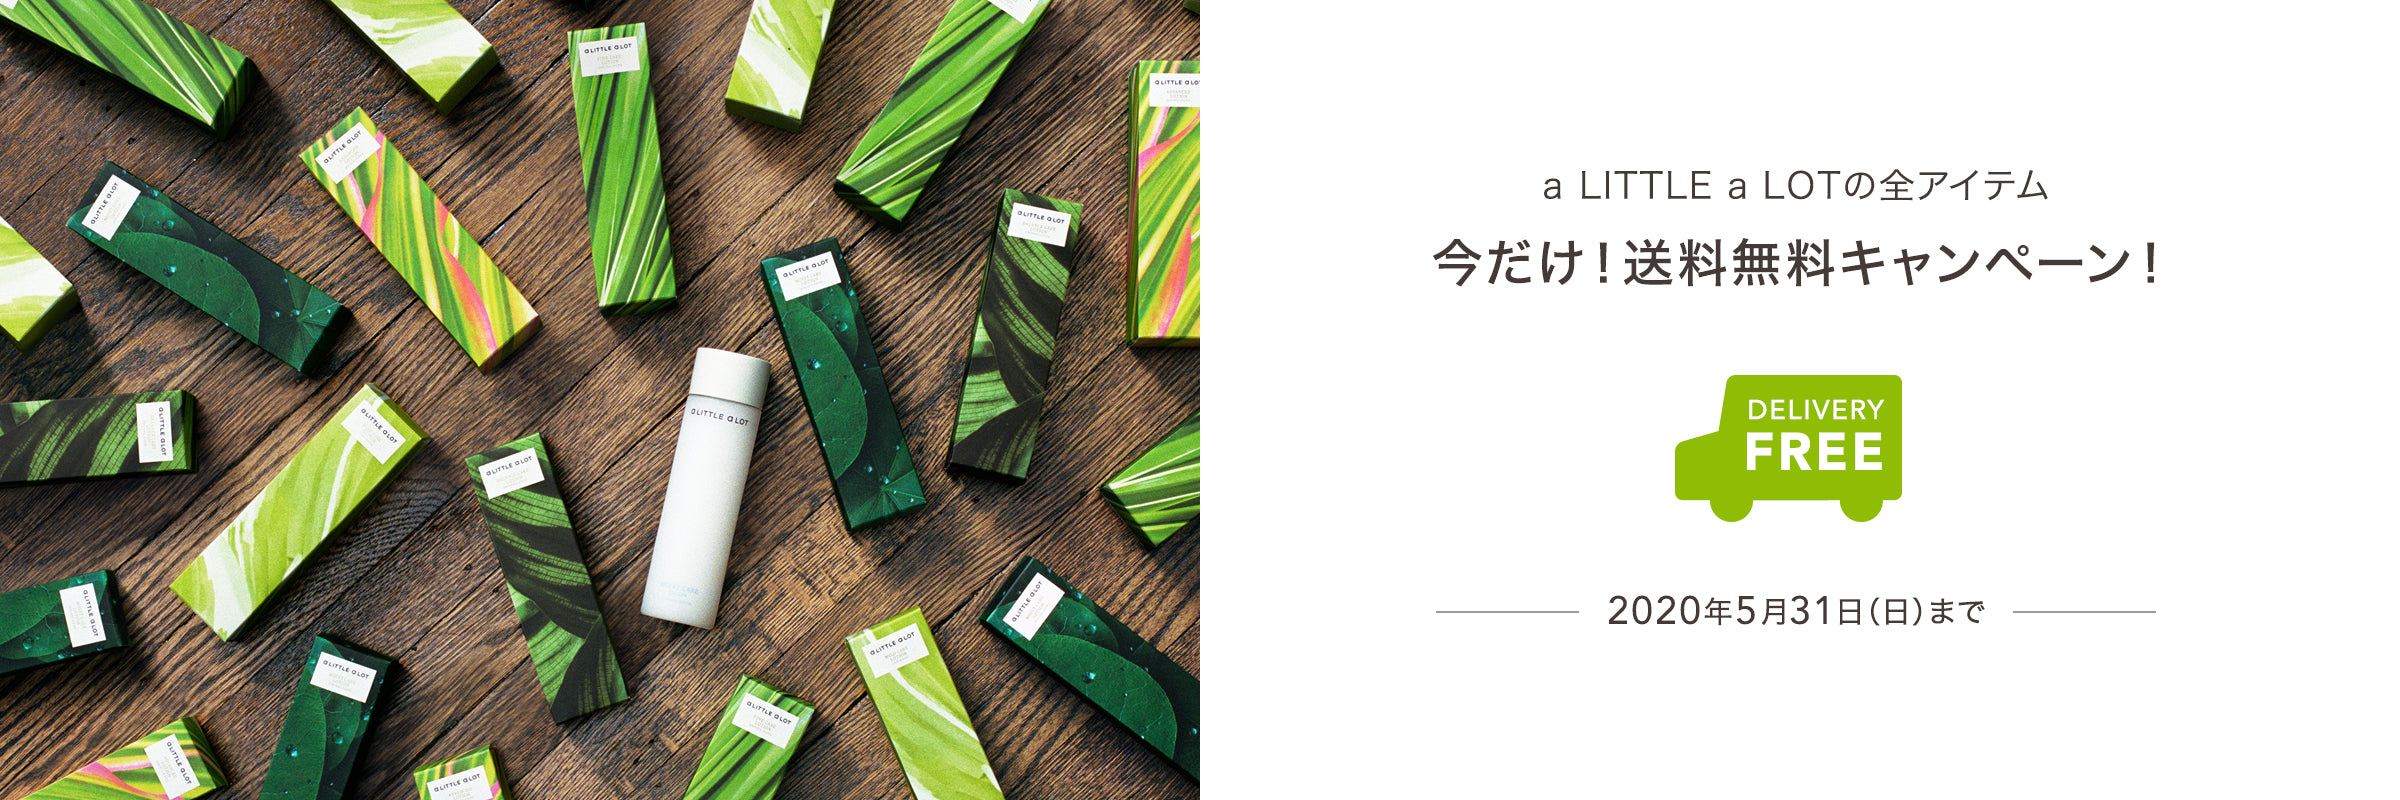 a LITTLE a LOTの全アイテム 今だけ!送料無料キャンペーン!2020年5月31日(日)まで